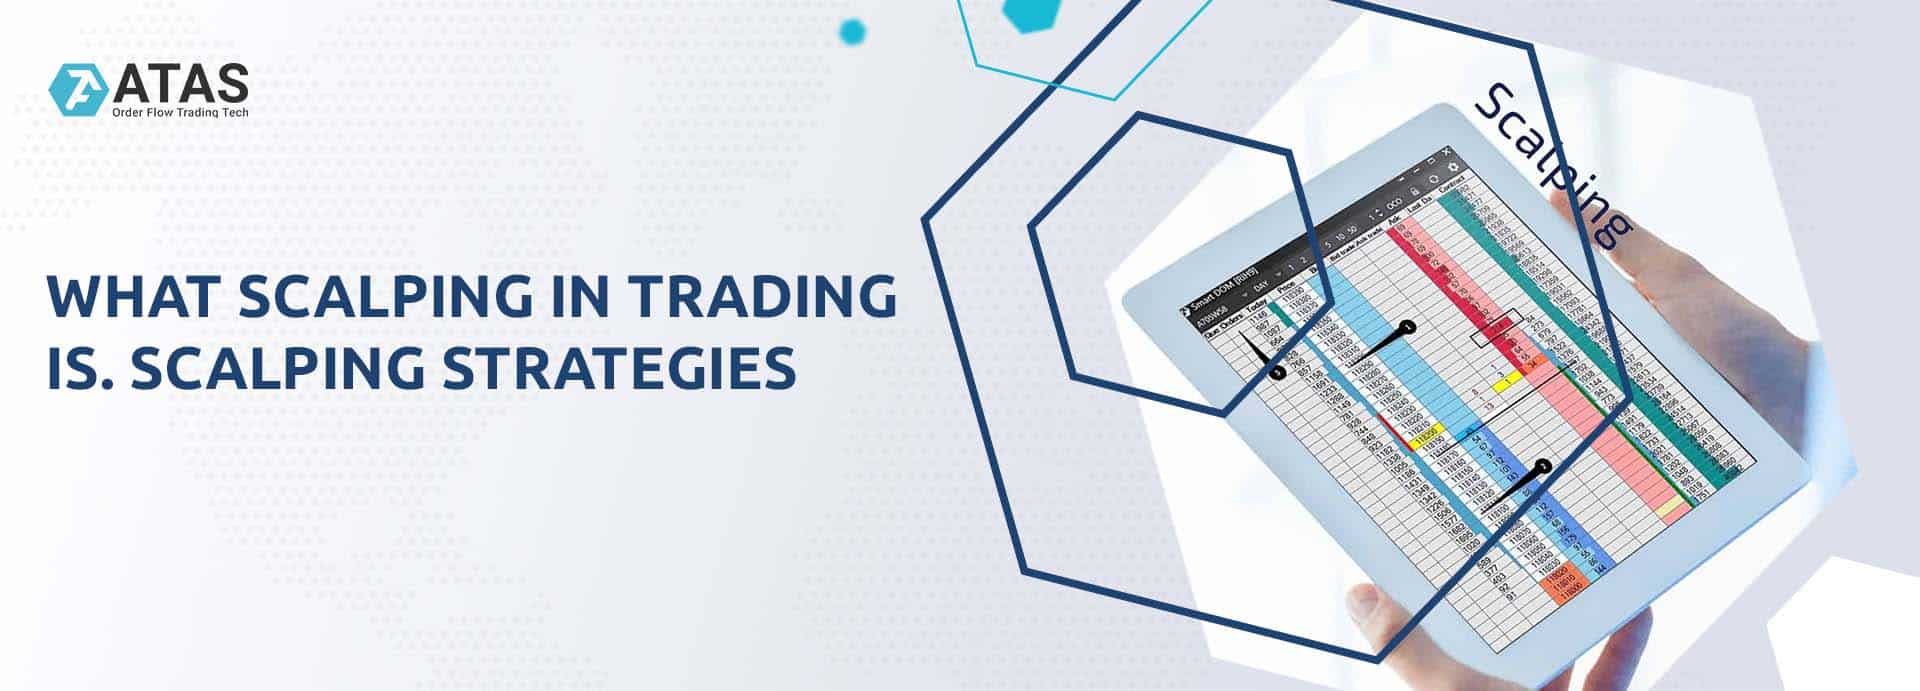 WHAT SCALPING IN TRADING IS. SCALPING STRATEGIES